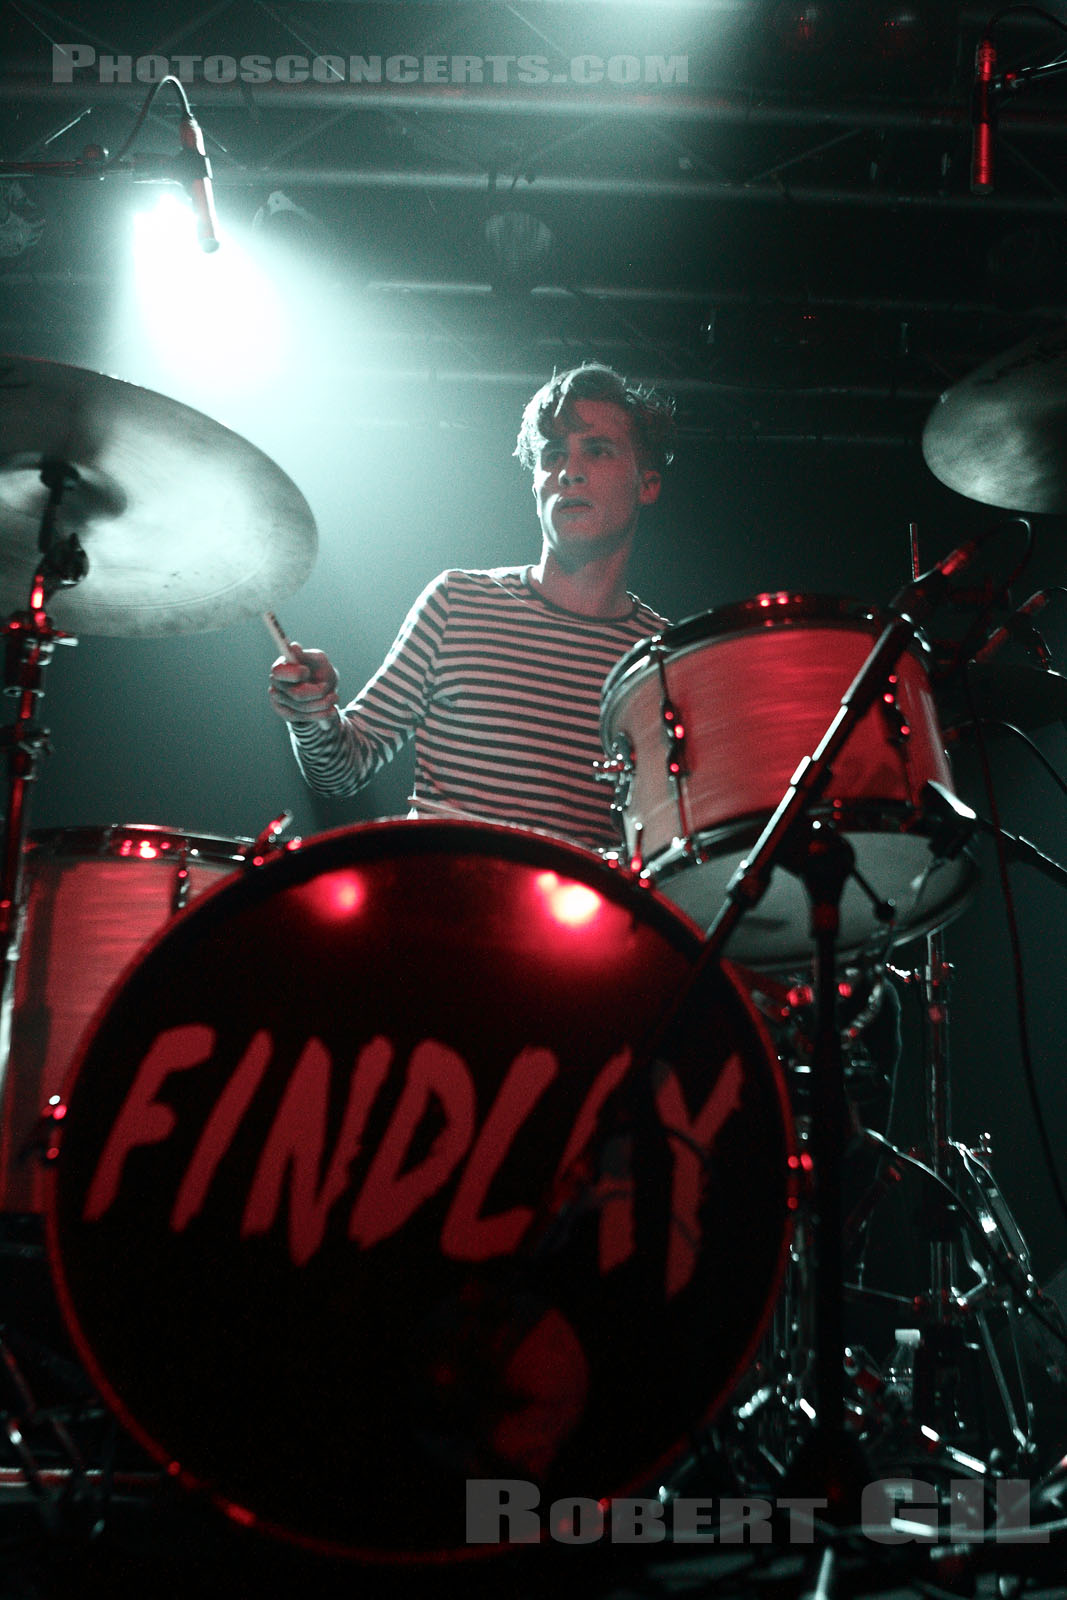 FINDLAY - 2013-11-10 - PARIS - La Boule Noire